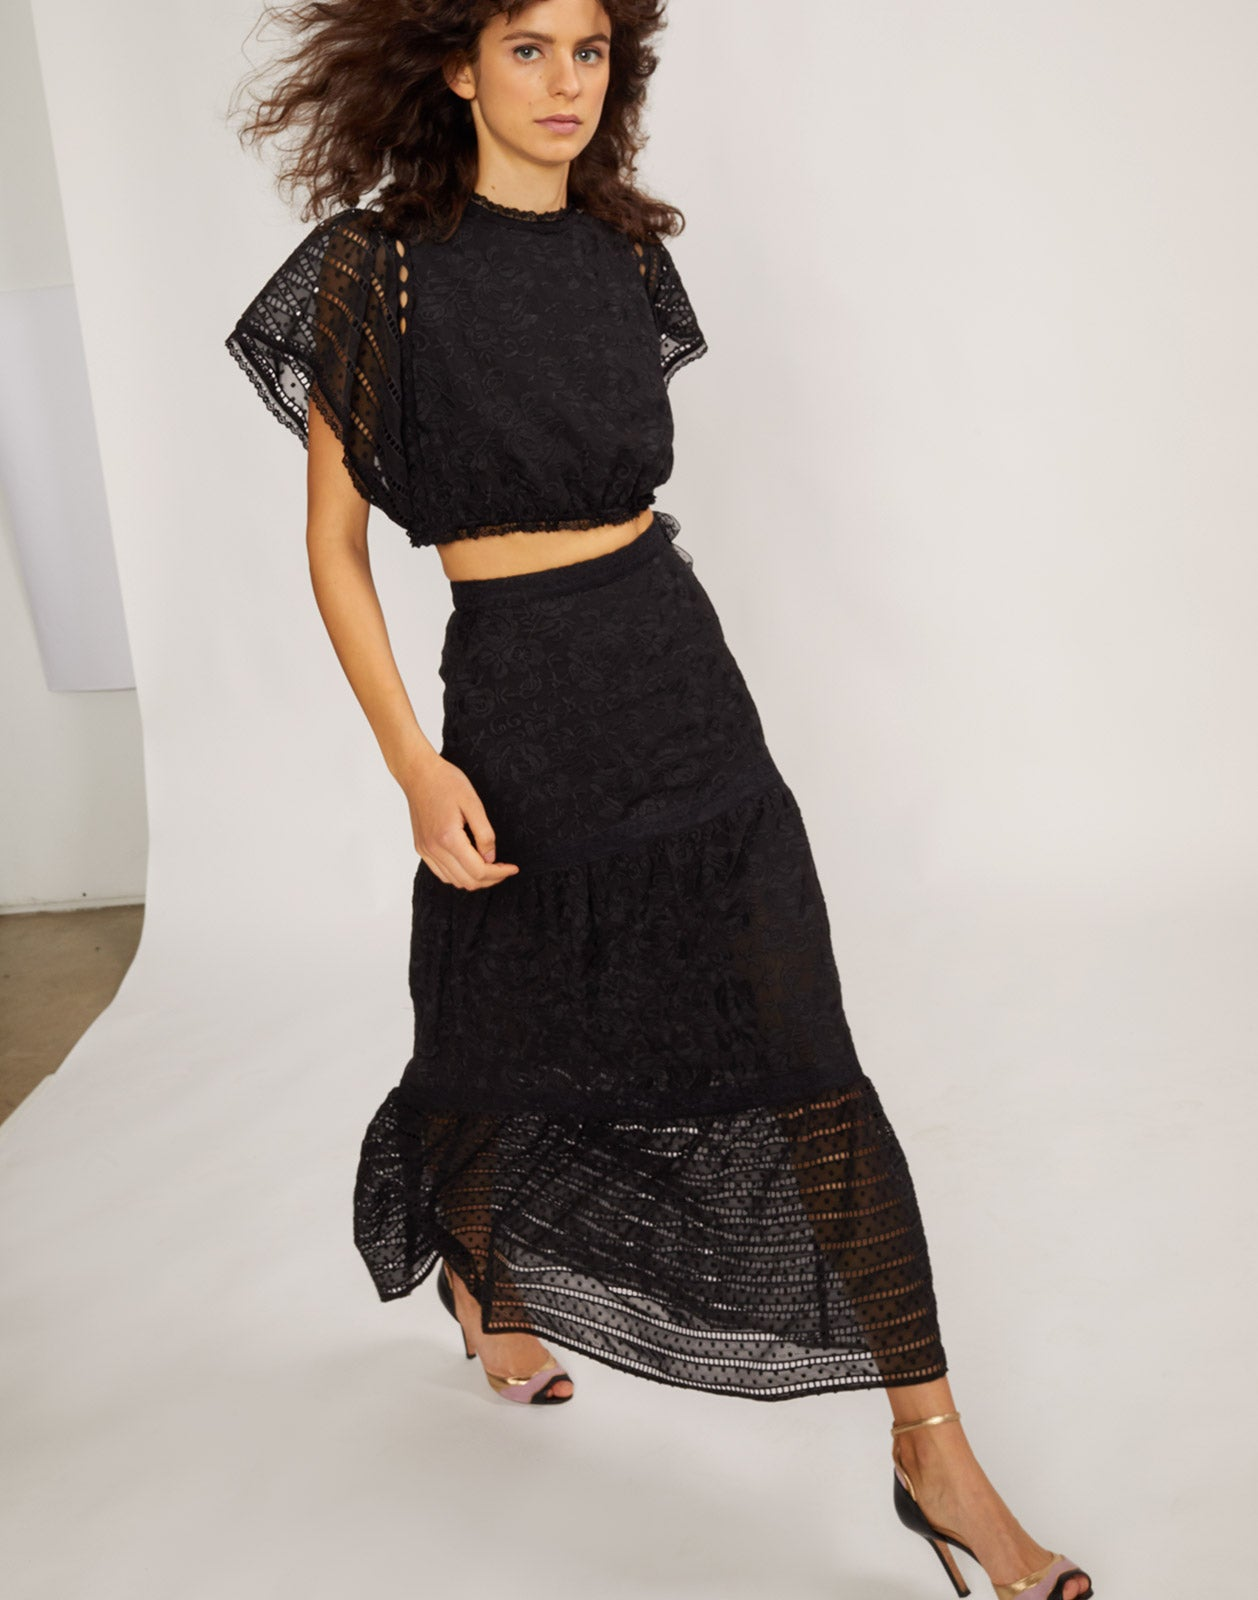 Side view of model wearing Wicker Park Lace Eyelet skirt and top.